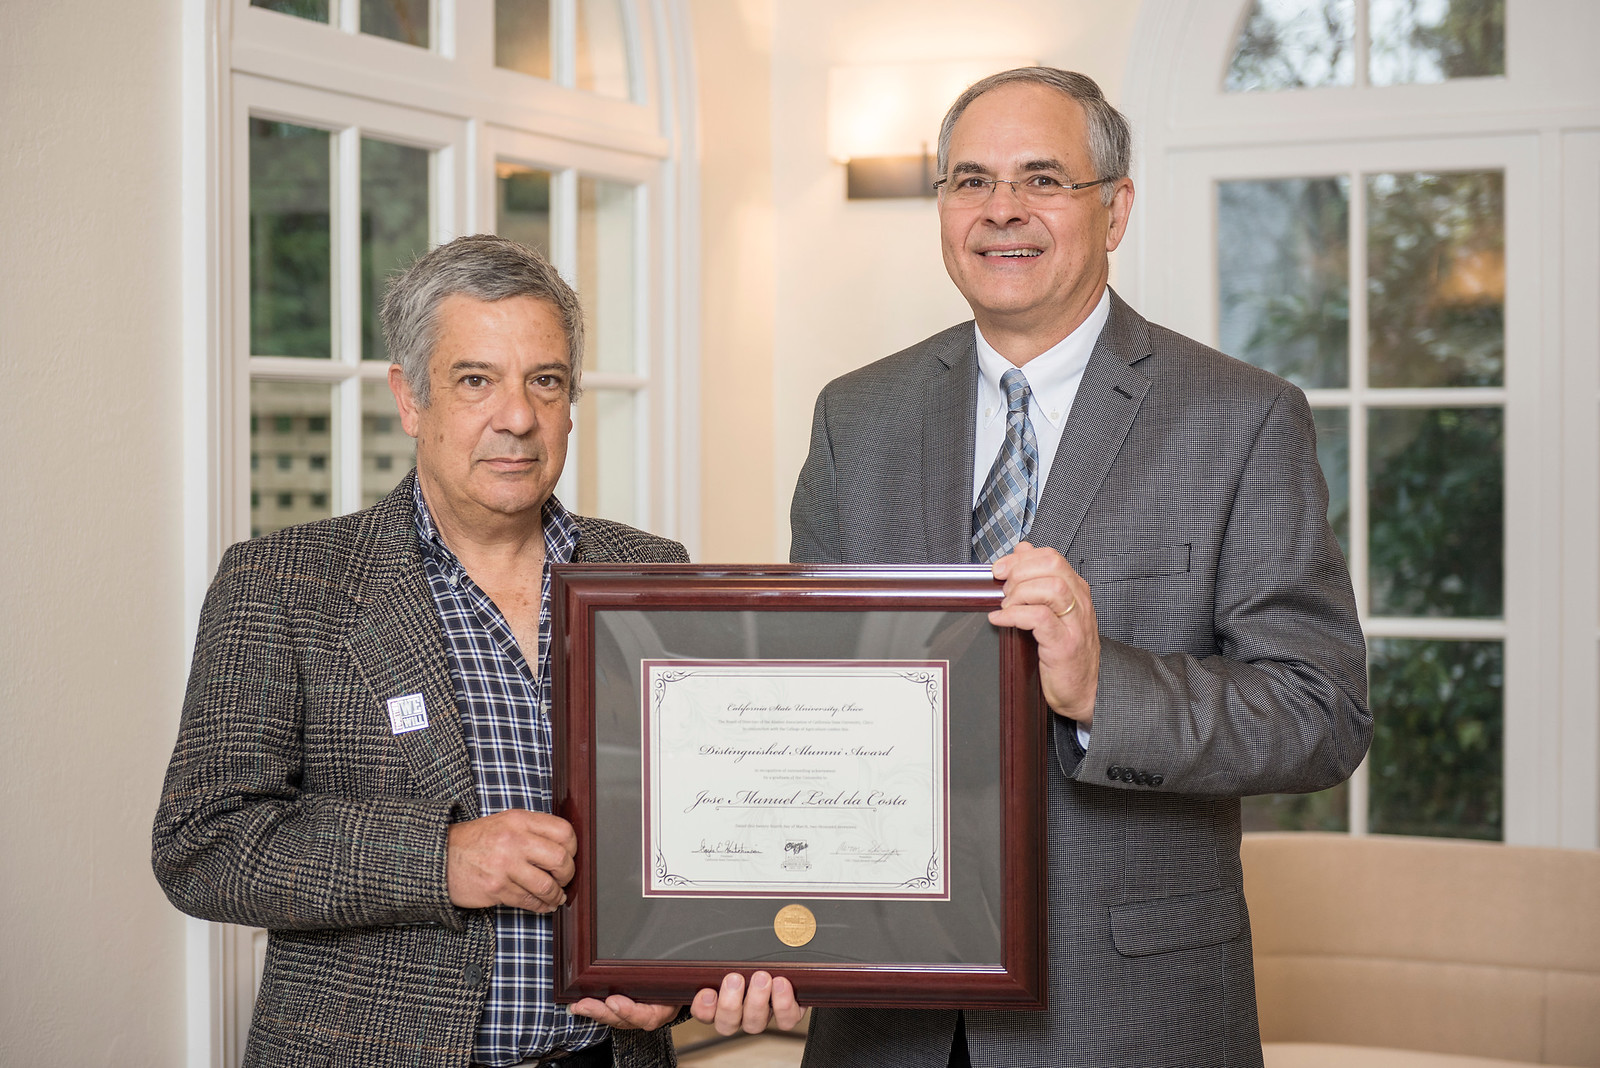 College of Agriculture Distinguished Alumni Jose Manuel Leal da Costa (BS, Agricultural Mechanics, 1984) (left) receives recognition by John Unruh (Dean, AG) (right) on Friday, March 24, 2017 in Chico, Calif. (Jason Halley/University Photographer)